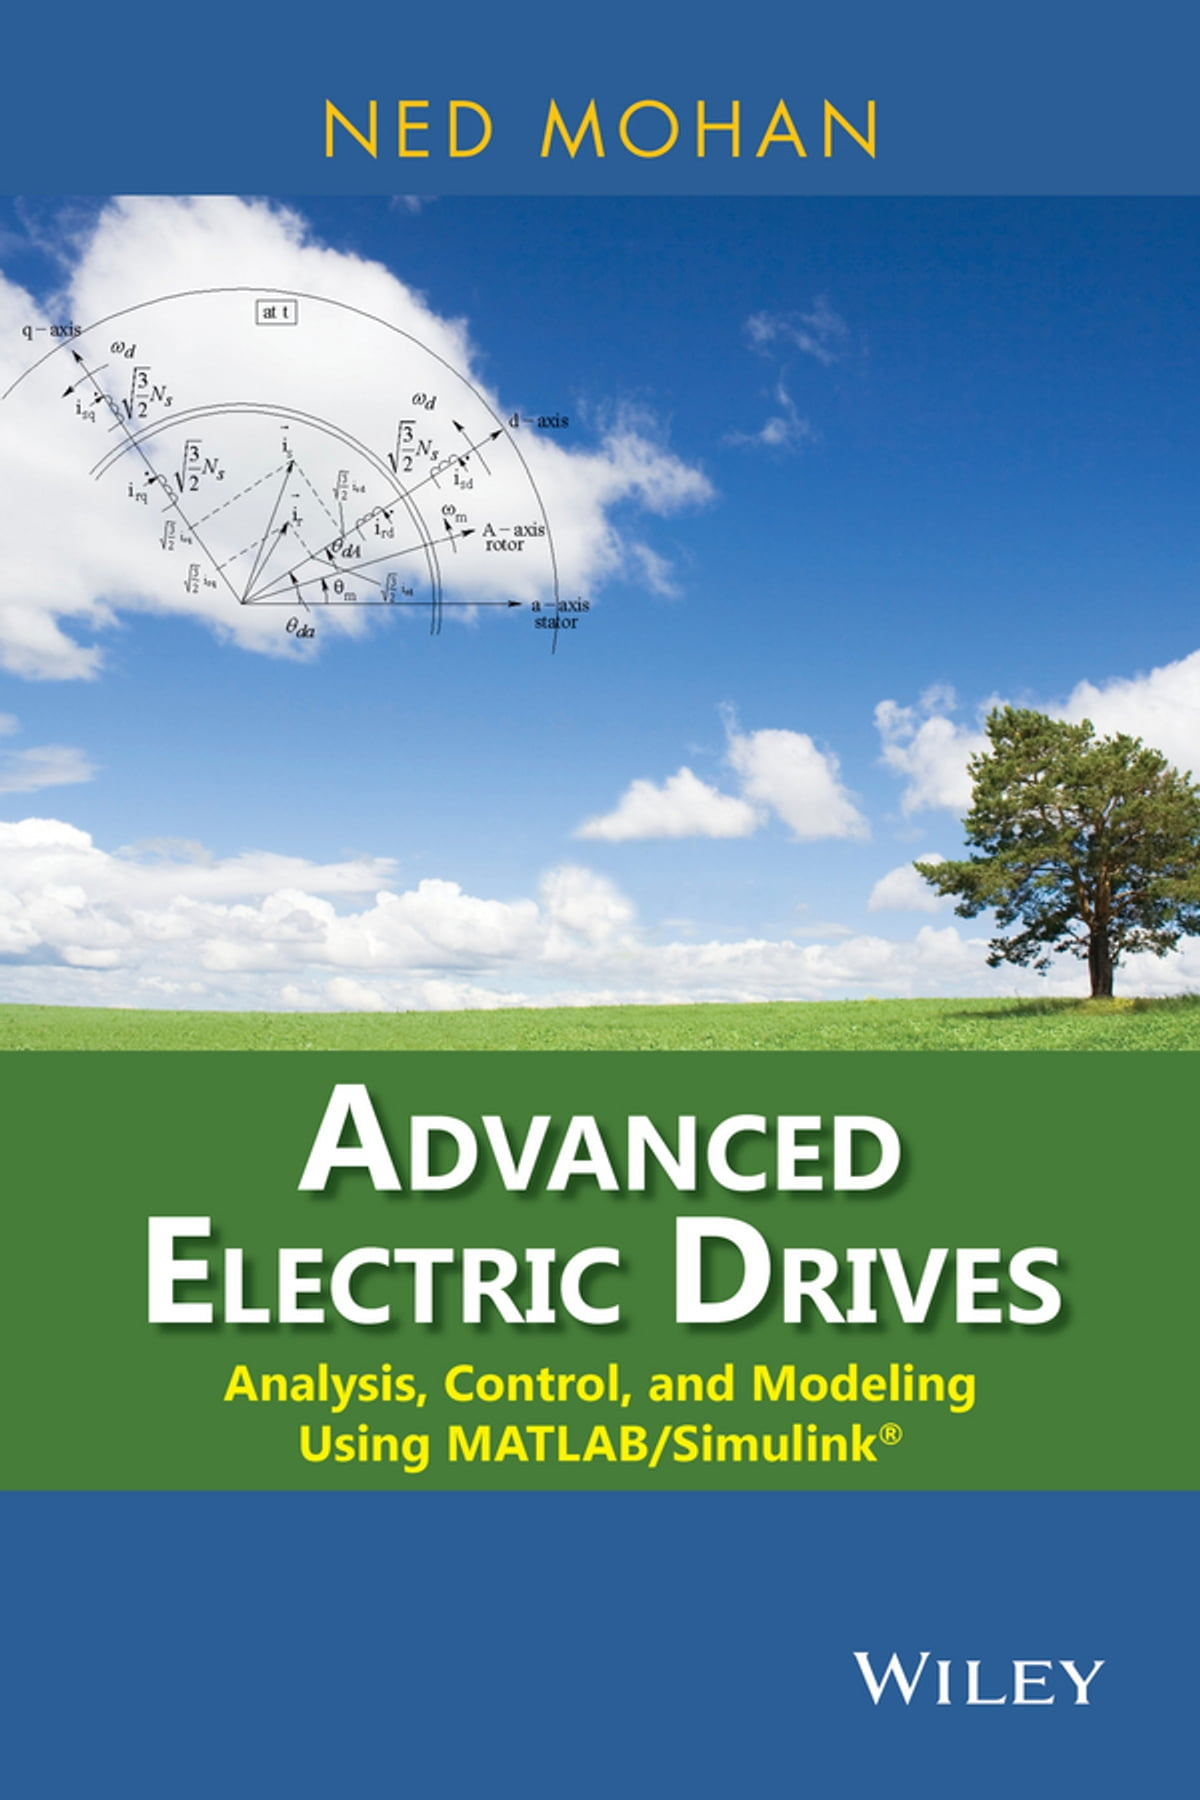 Ebook electronics ned download mohan power free